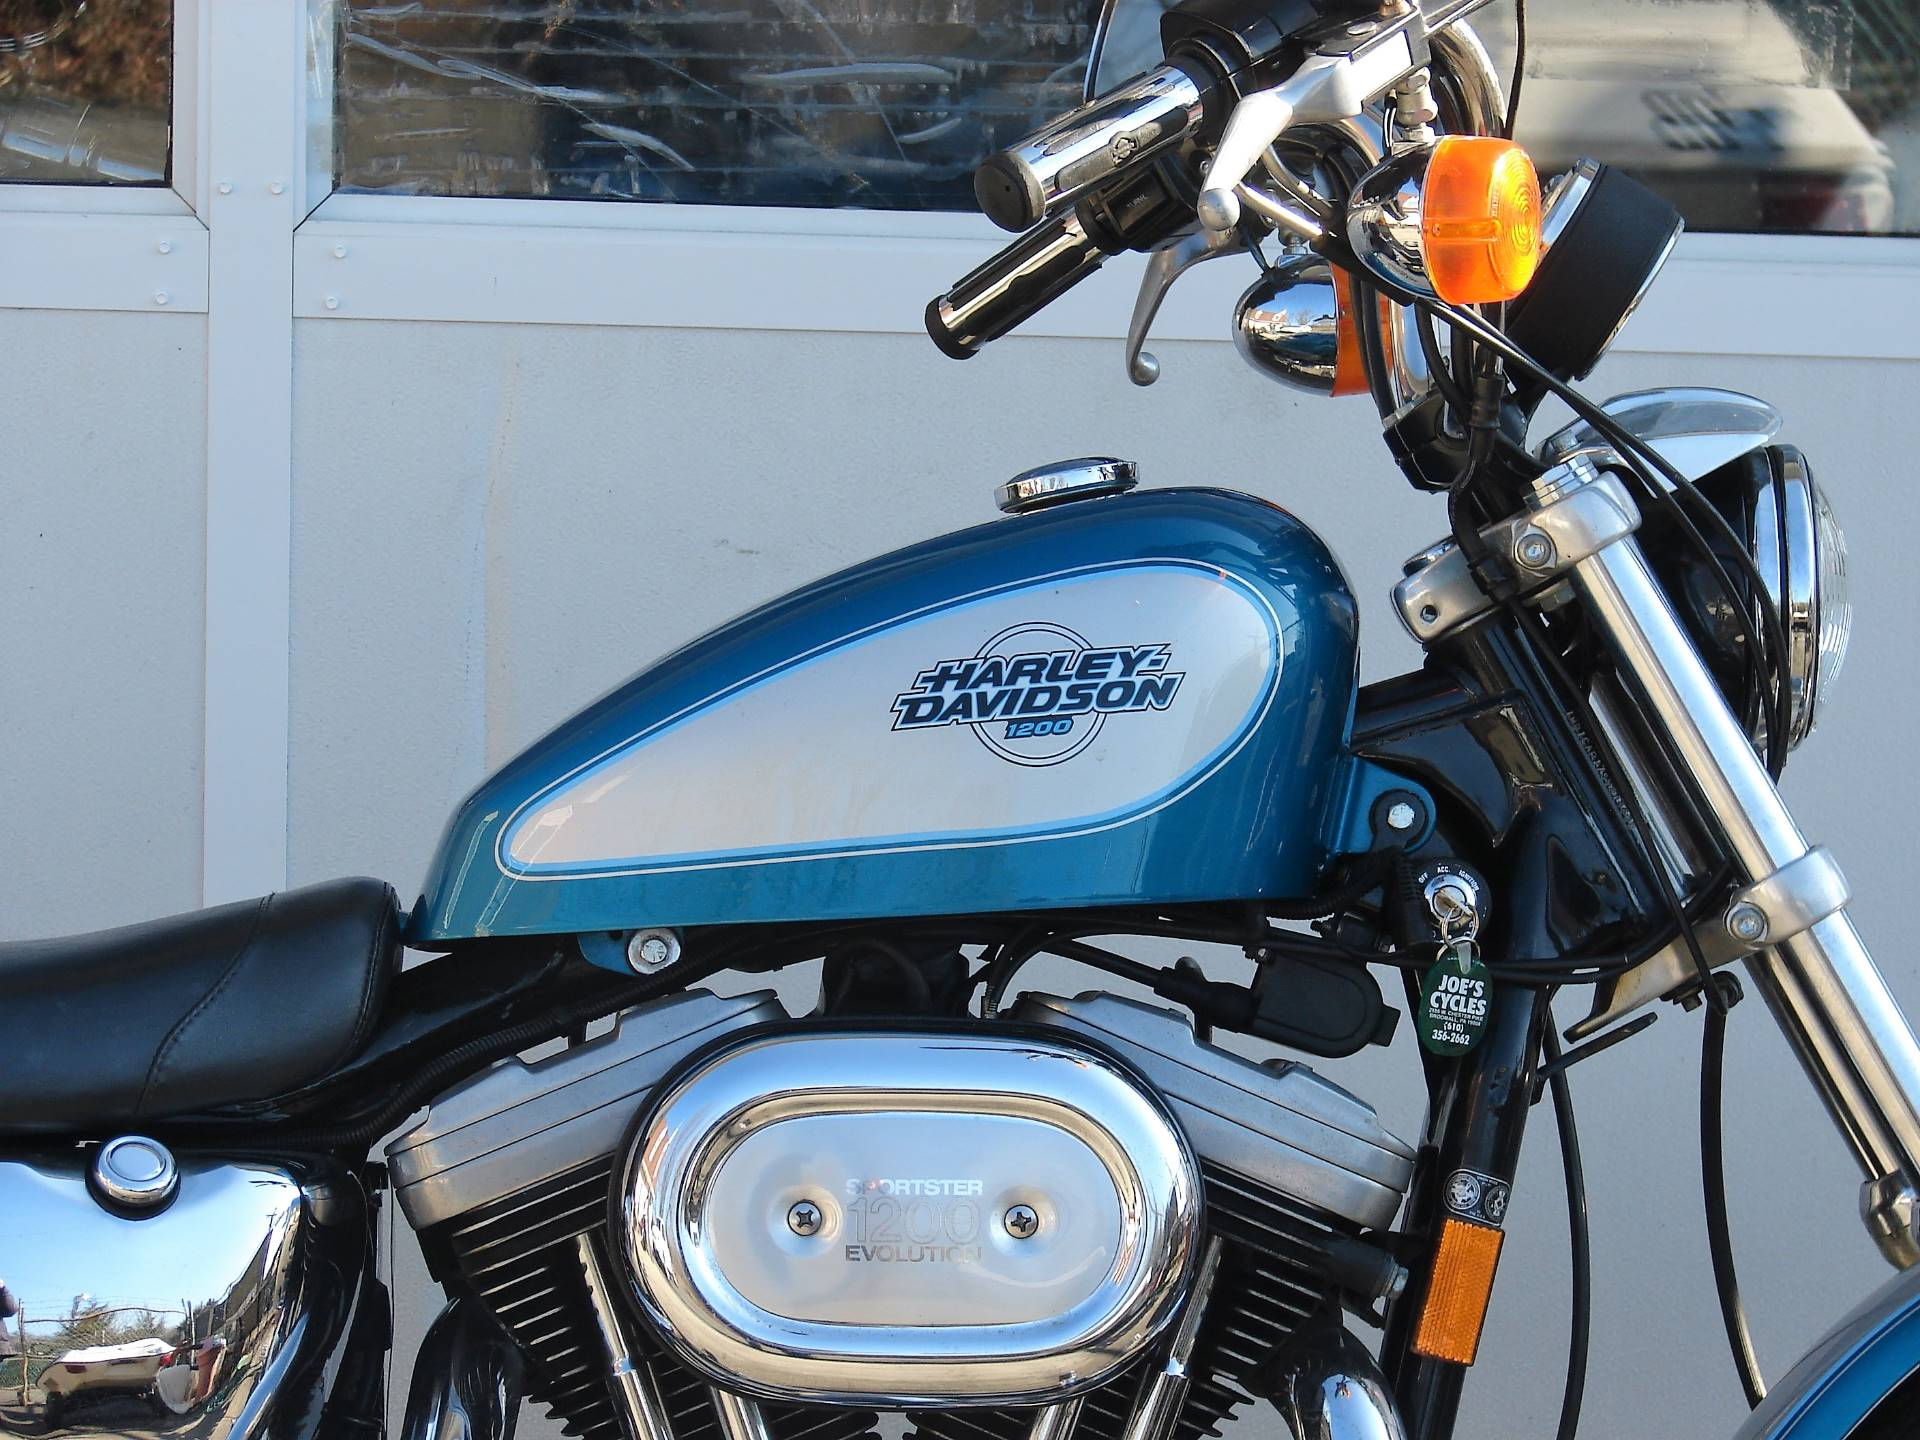 1995 Harley-Davidson 1200 Sportster  (Teal Blue and Silver) in Williamstown, New Jersey - Photo 3